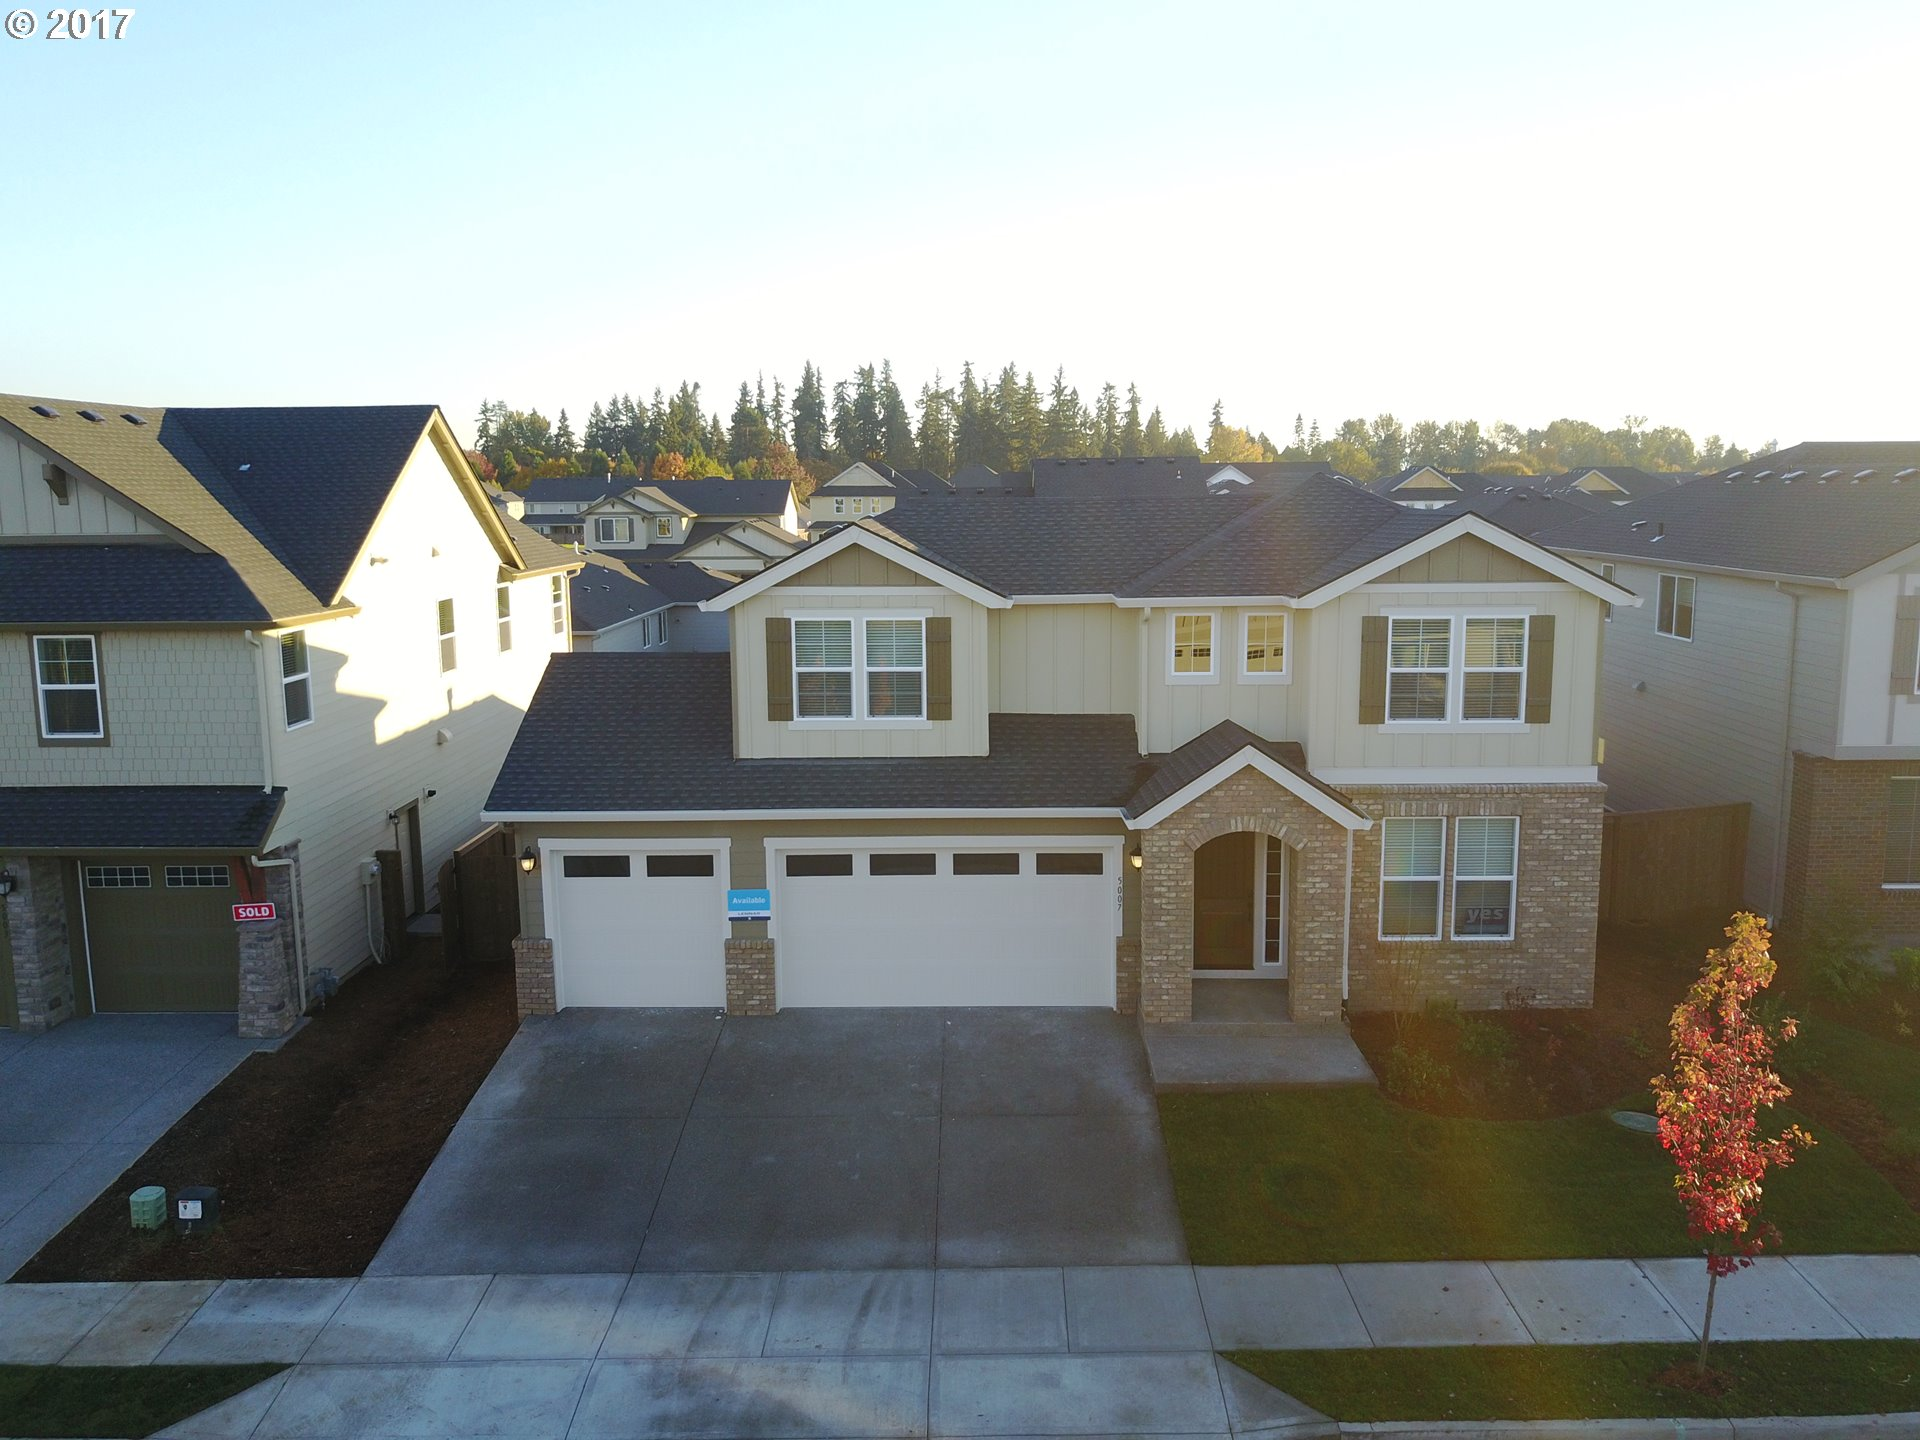 5007 NW 138TH ST Lot56, Vancouver, WA 98685